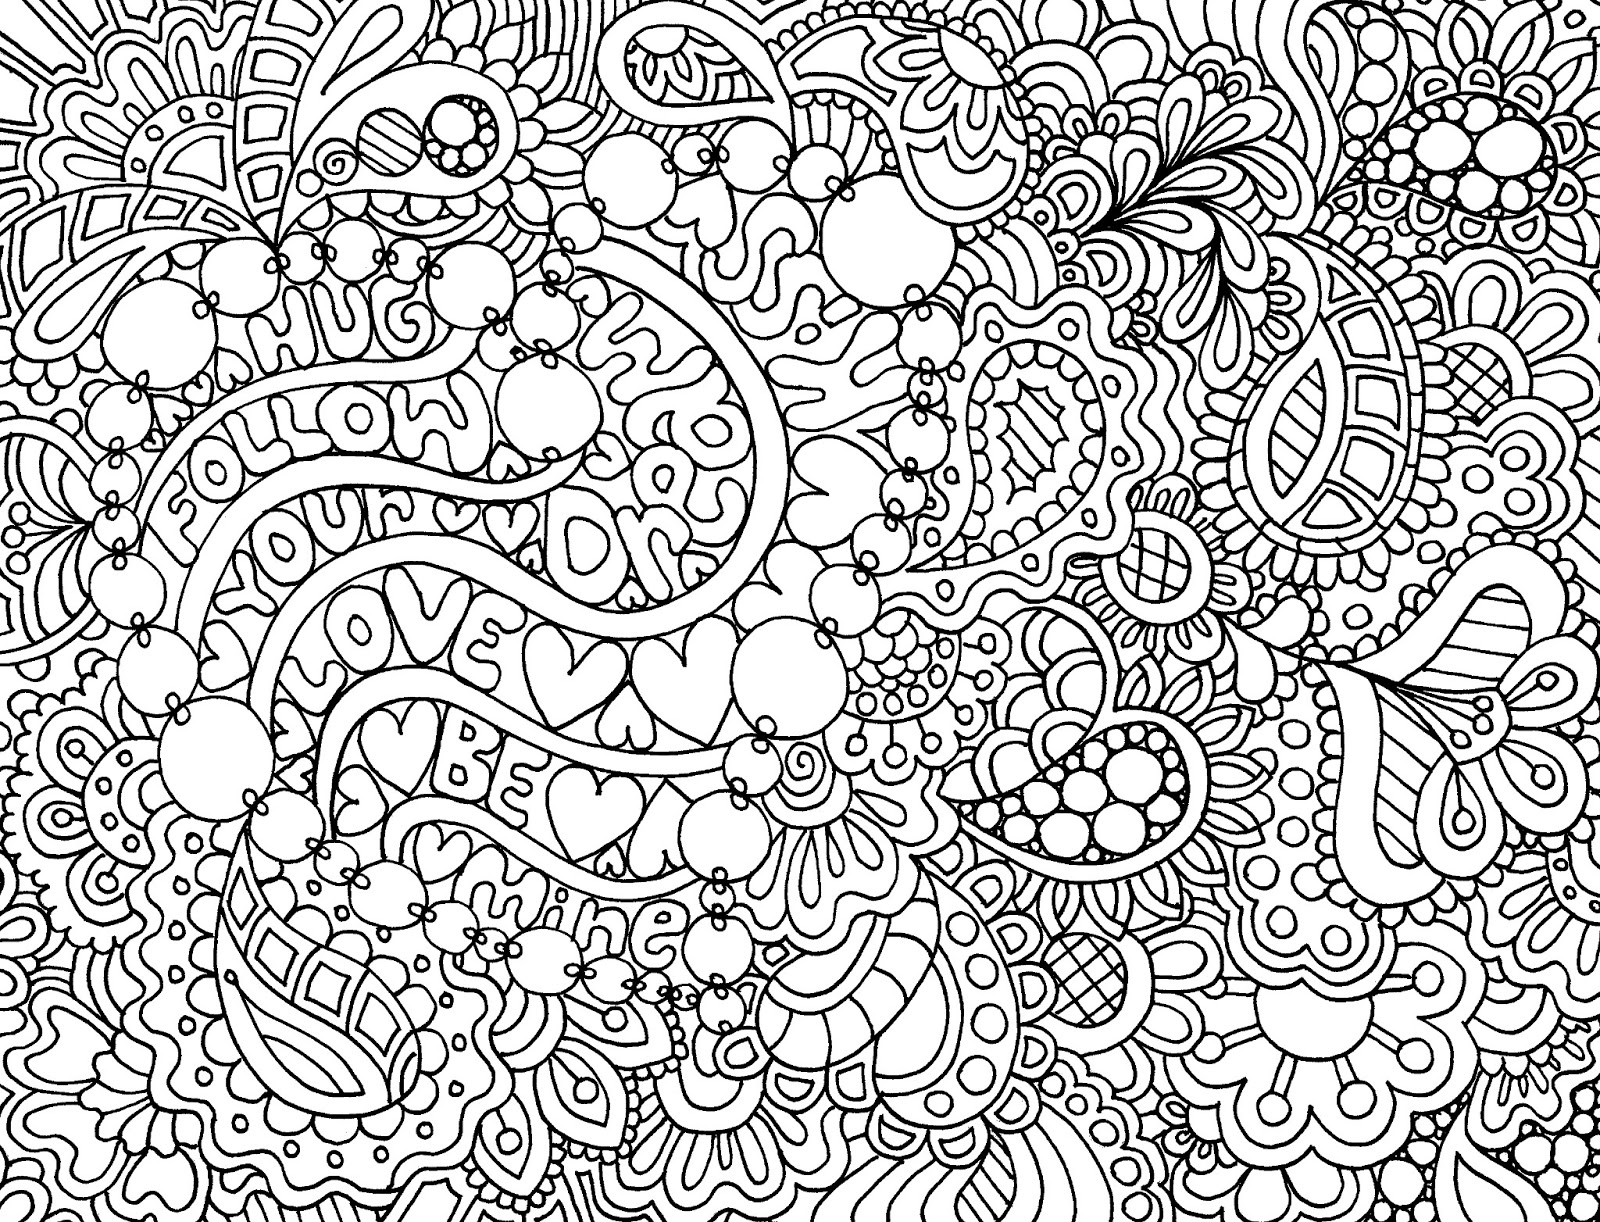 Zen, Coloring pages and Coloring on Pinterest